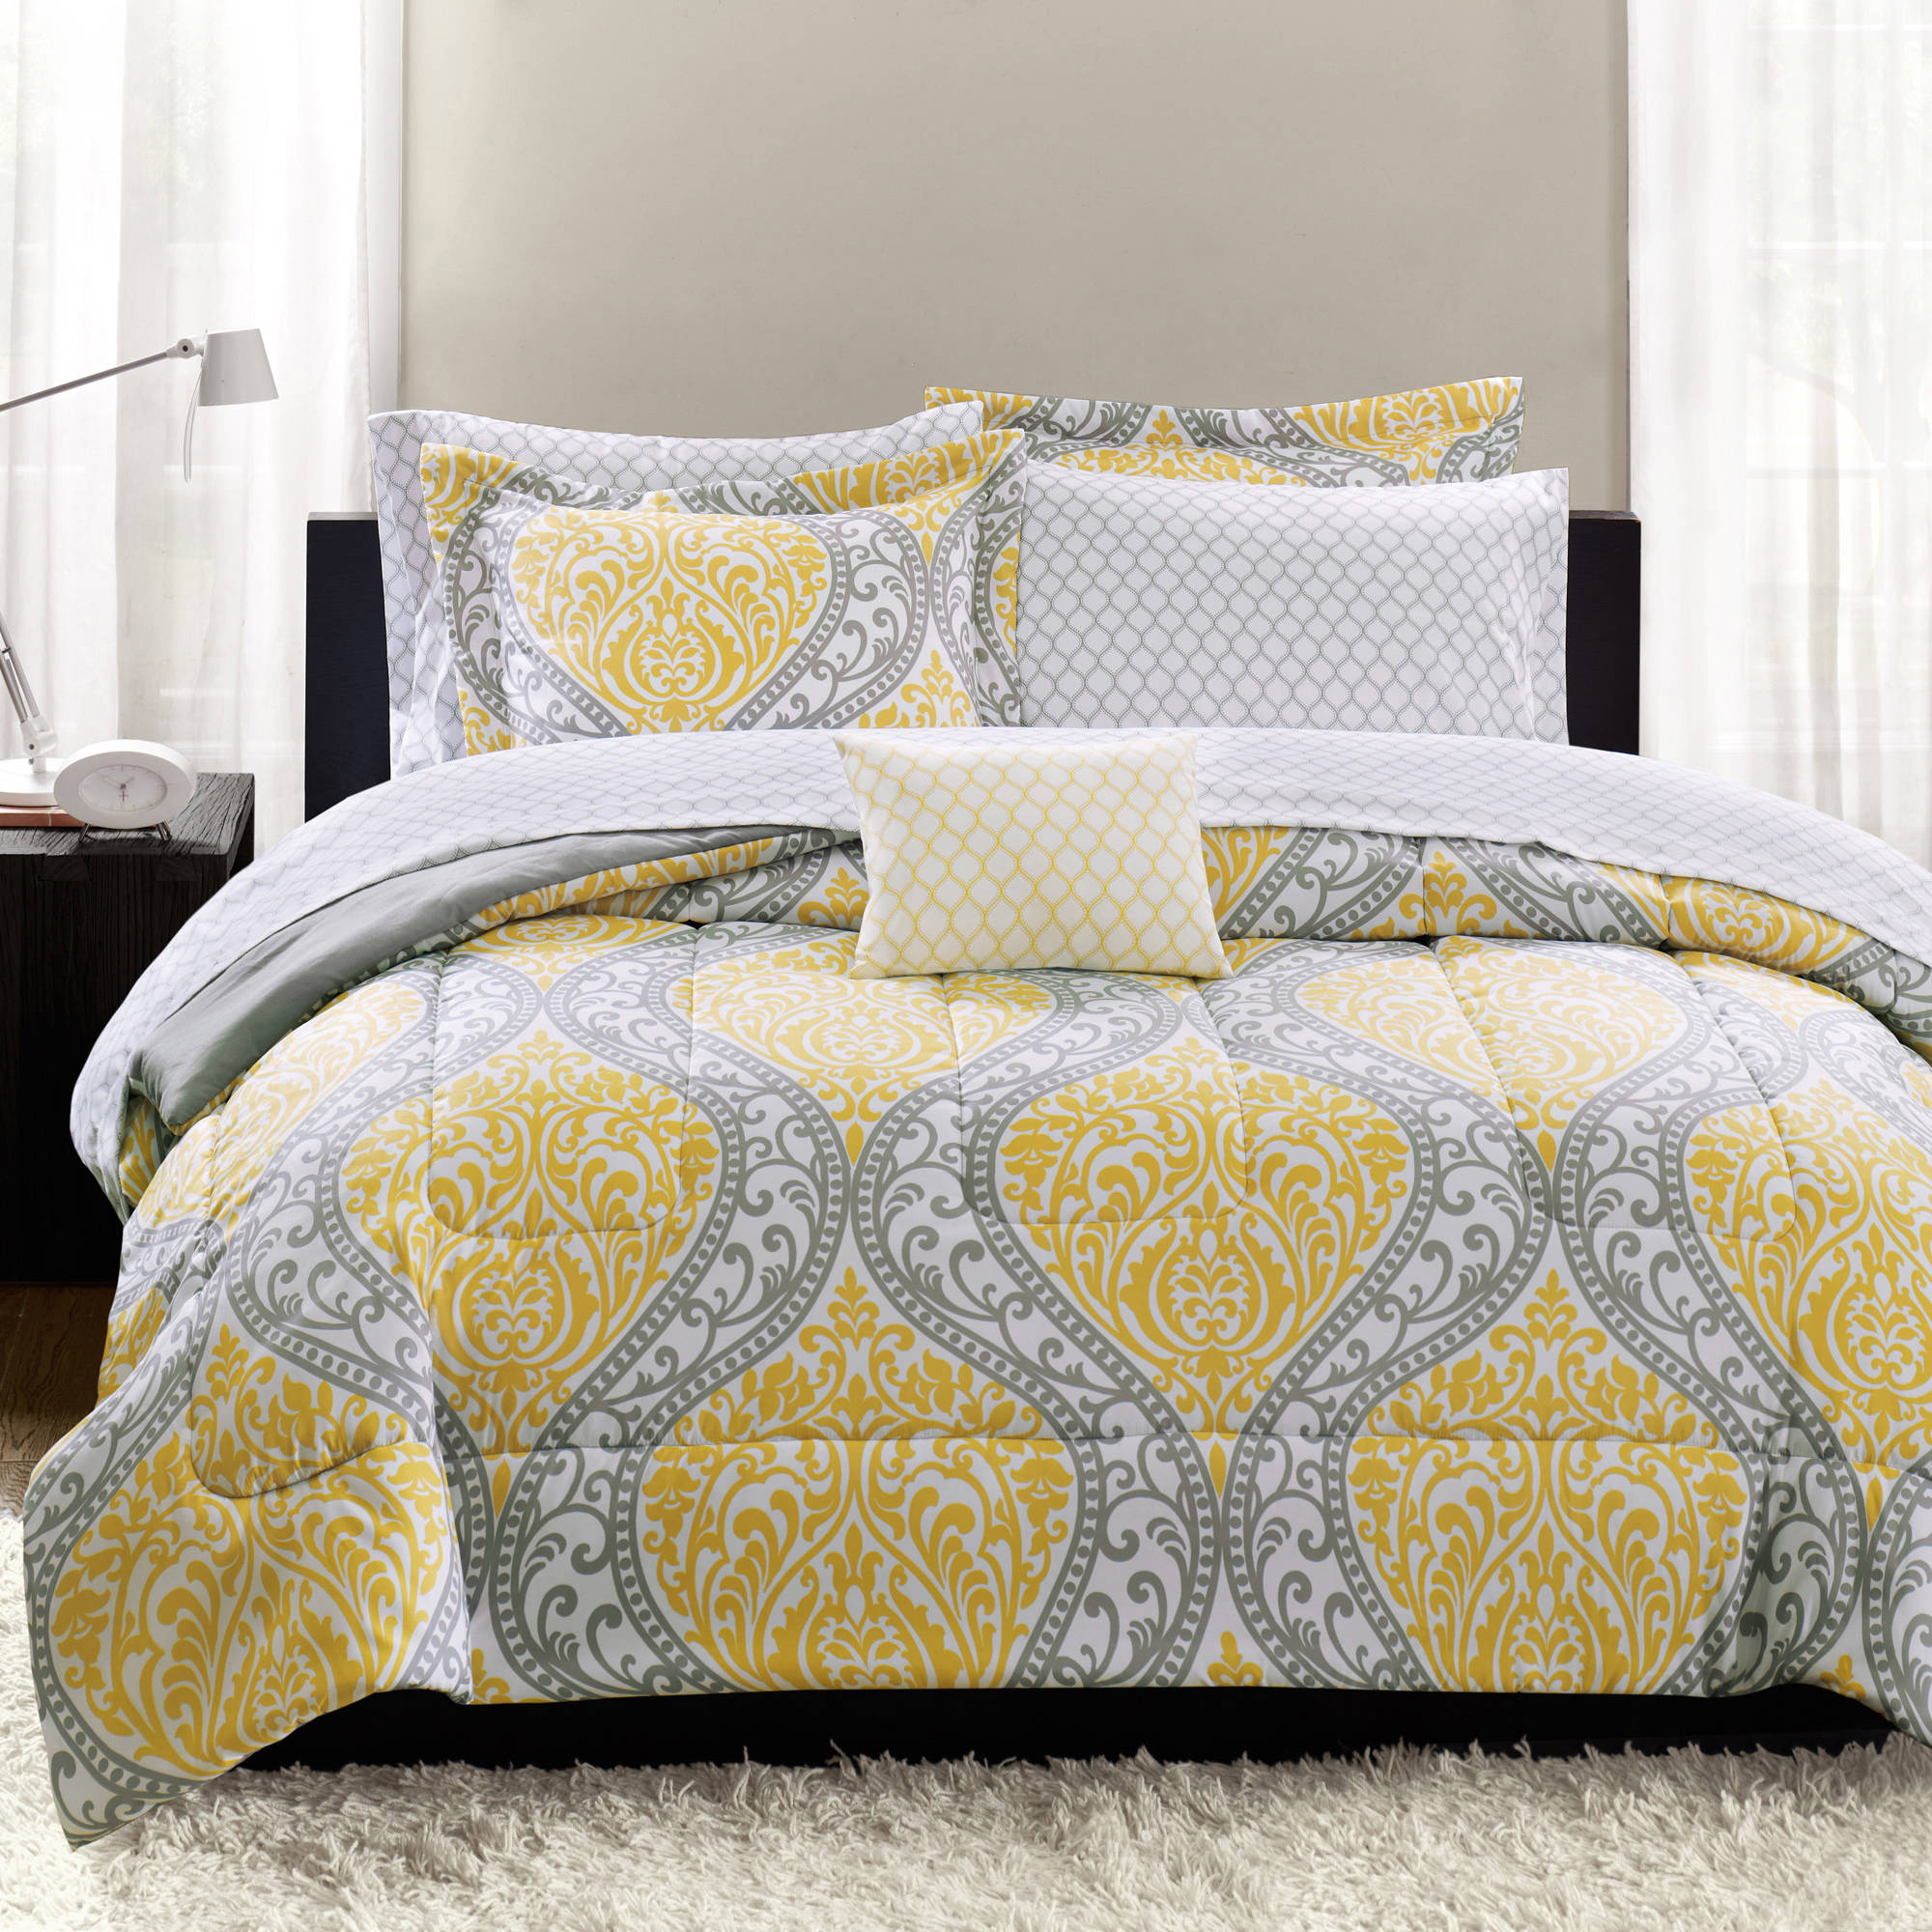 Modern Bedroom Bedding Sets Style